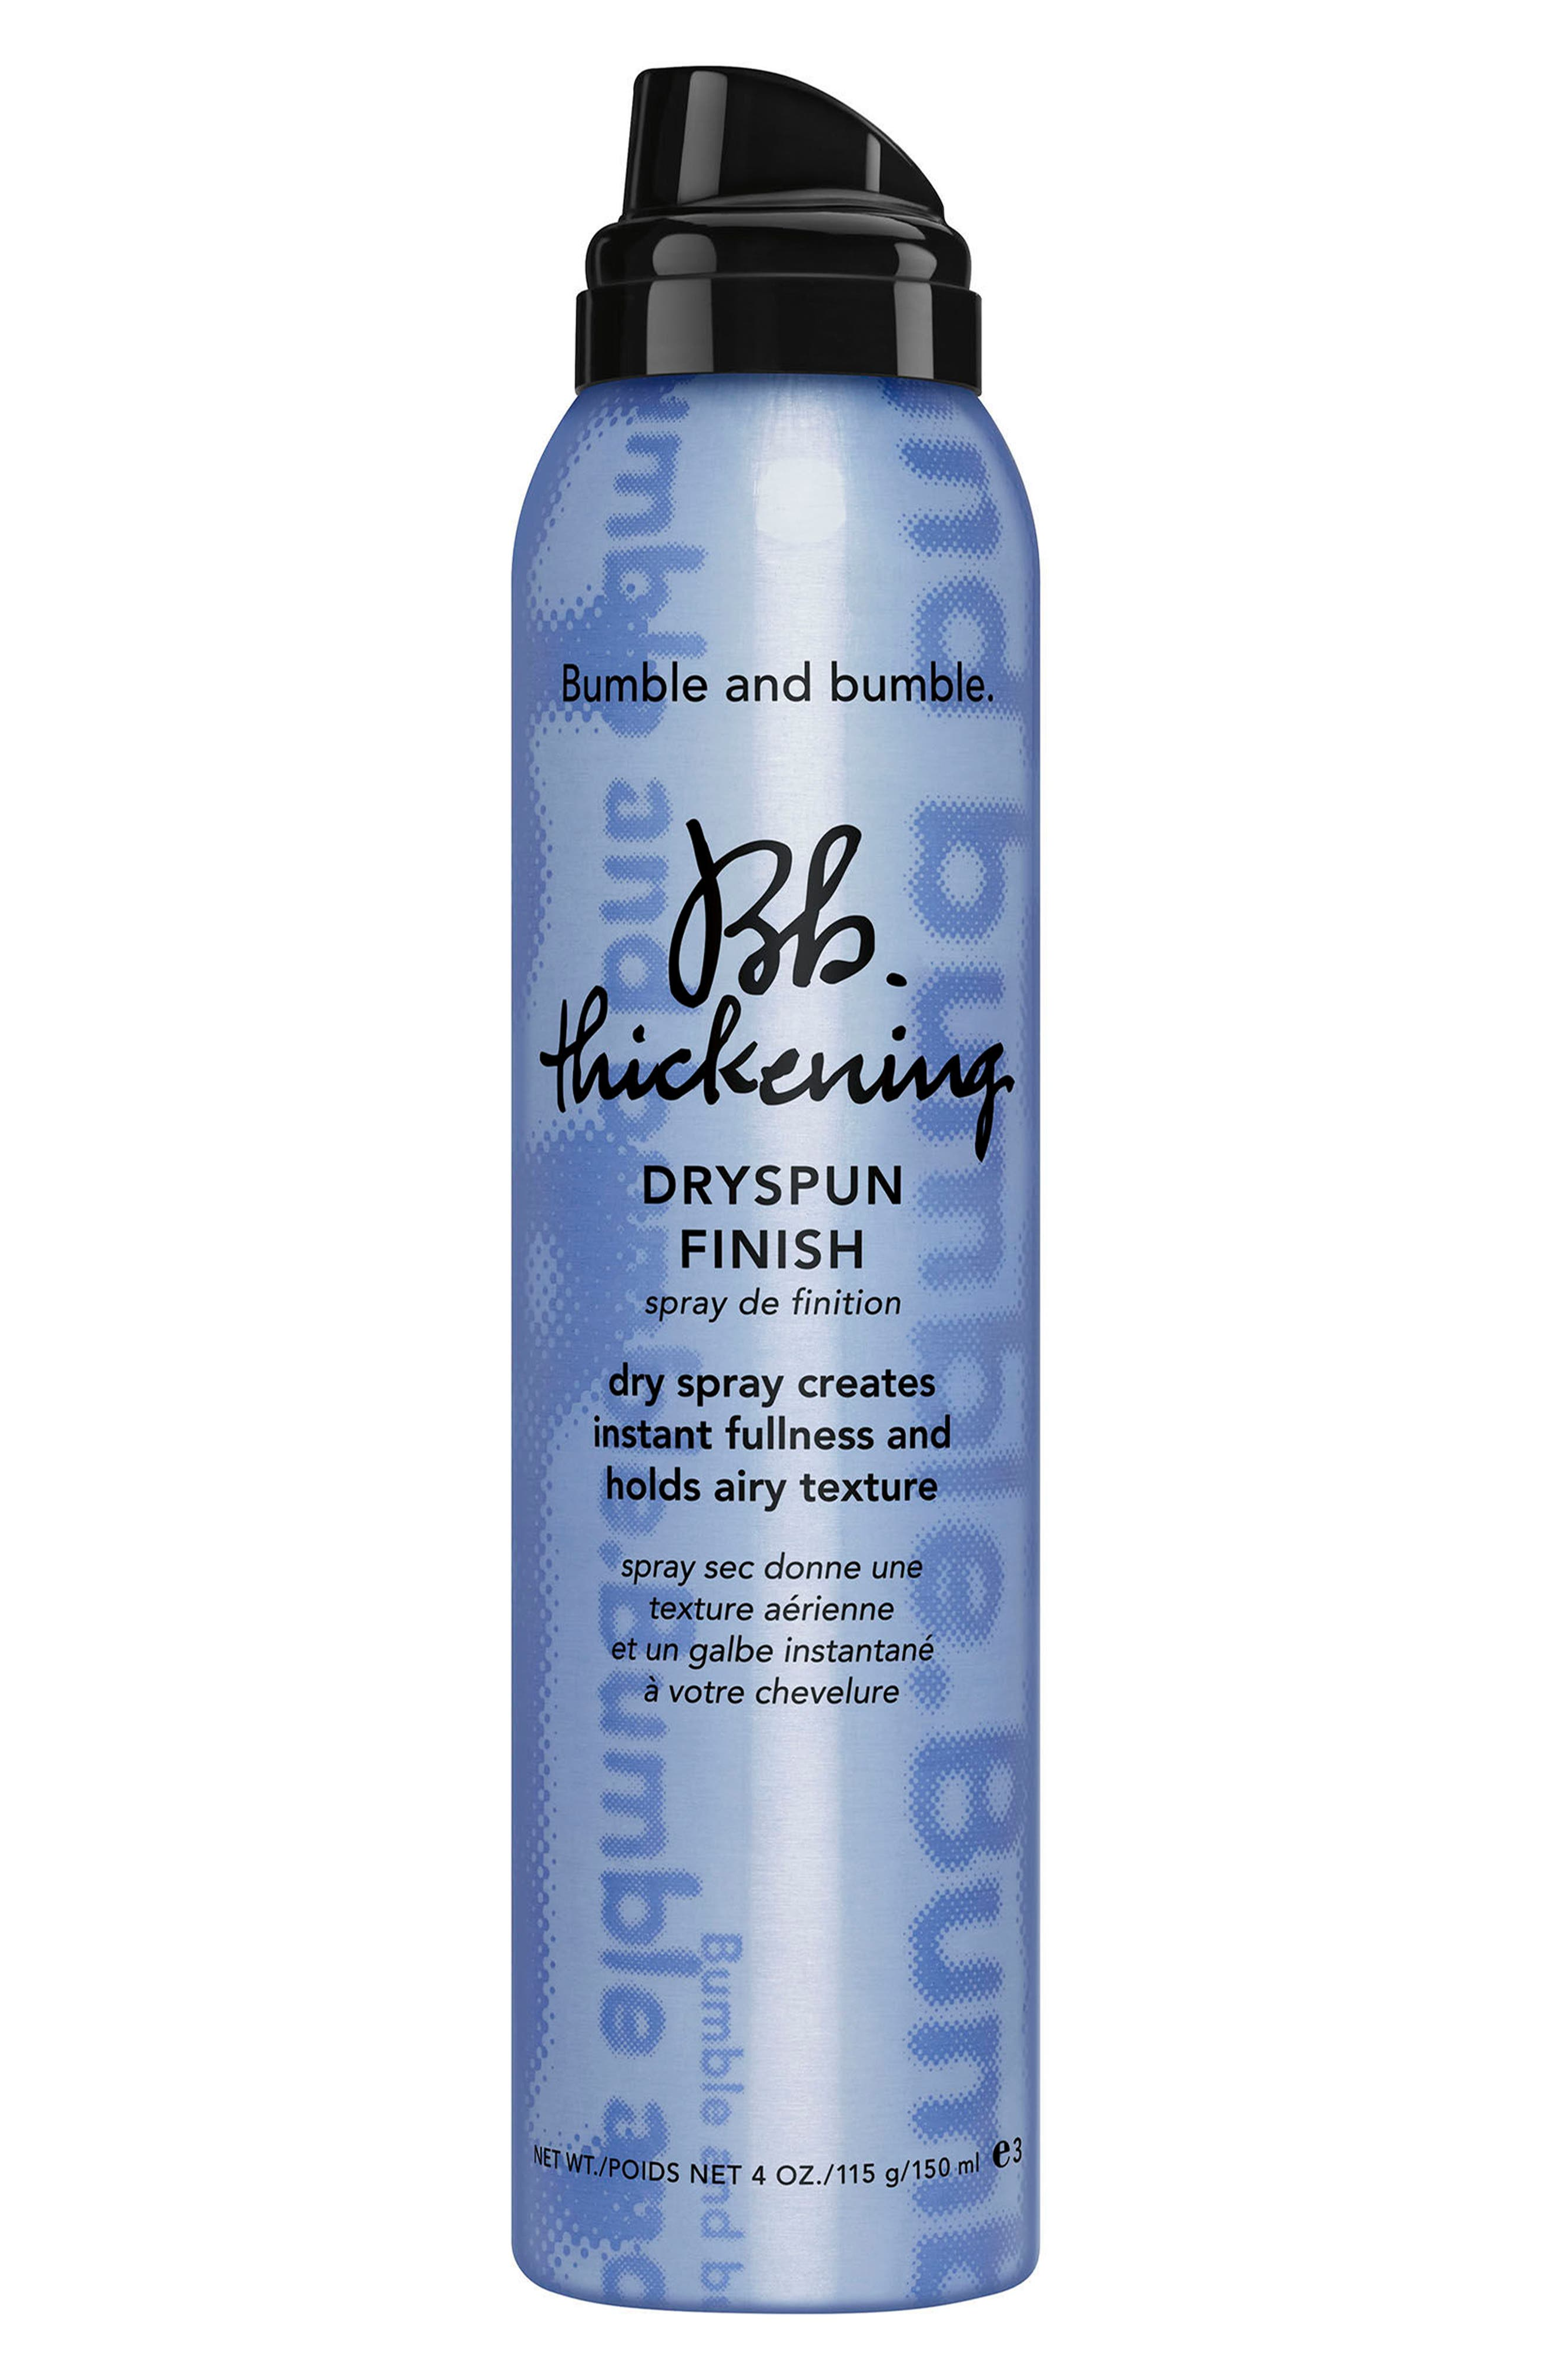 Bumble and bumble Thickening Dryspun Finish Dry Spray